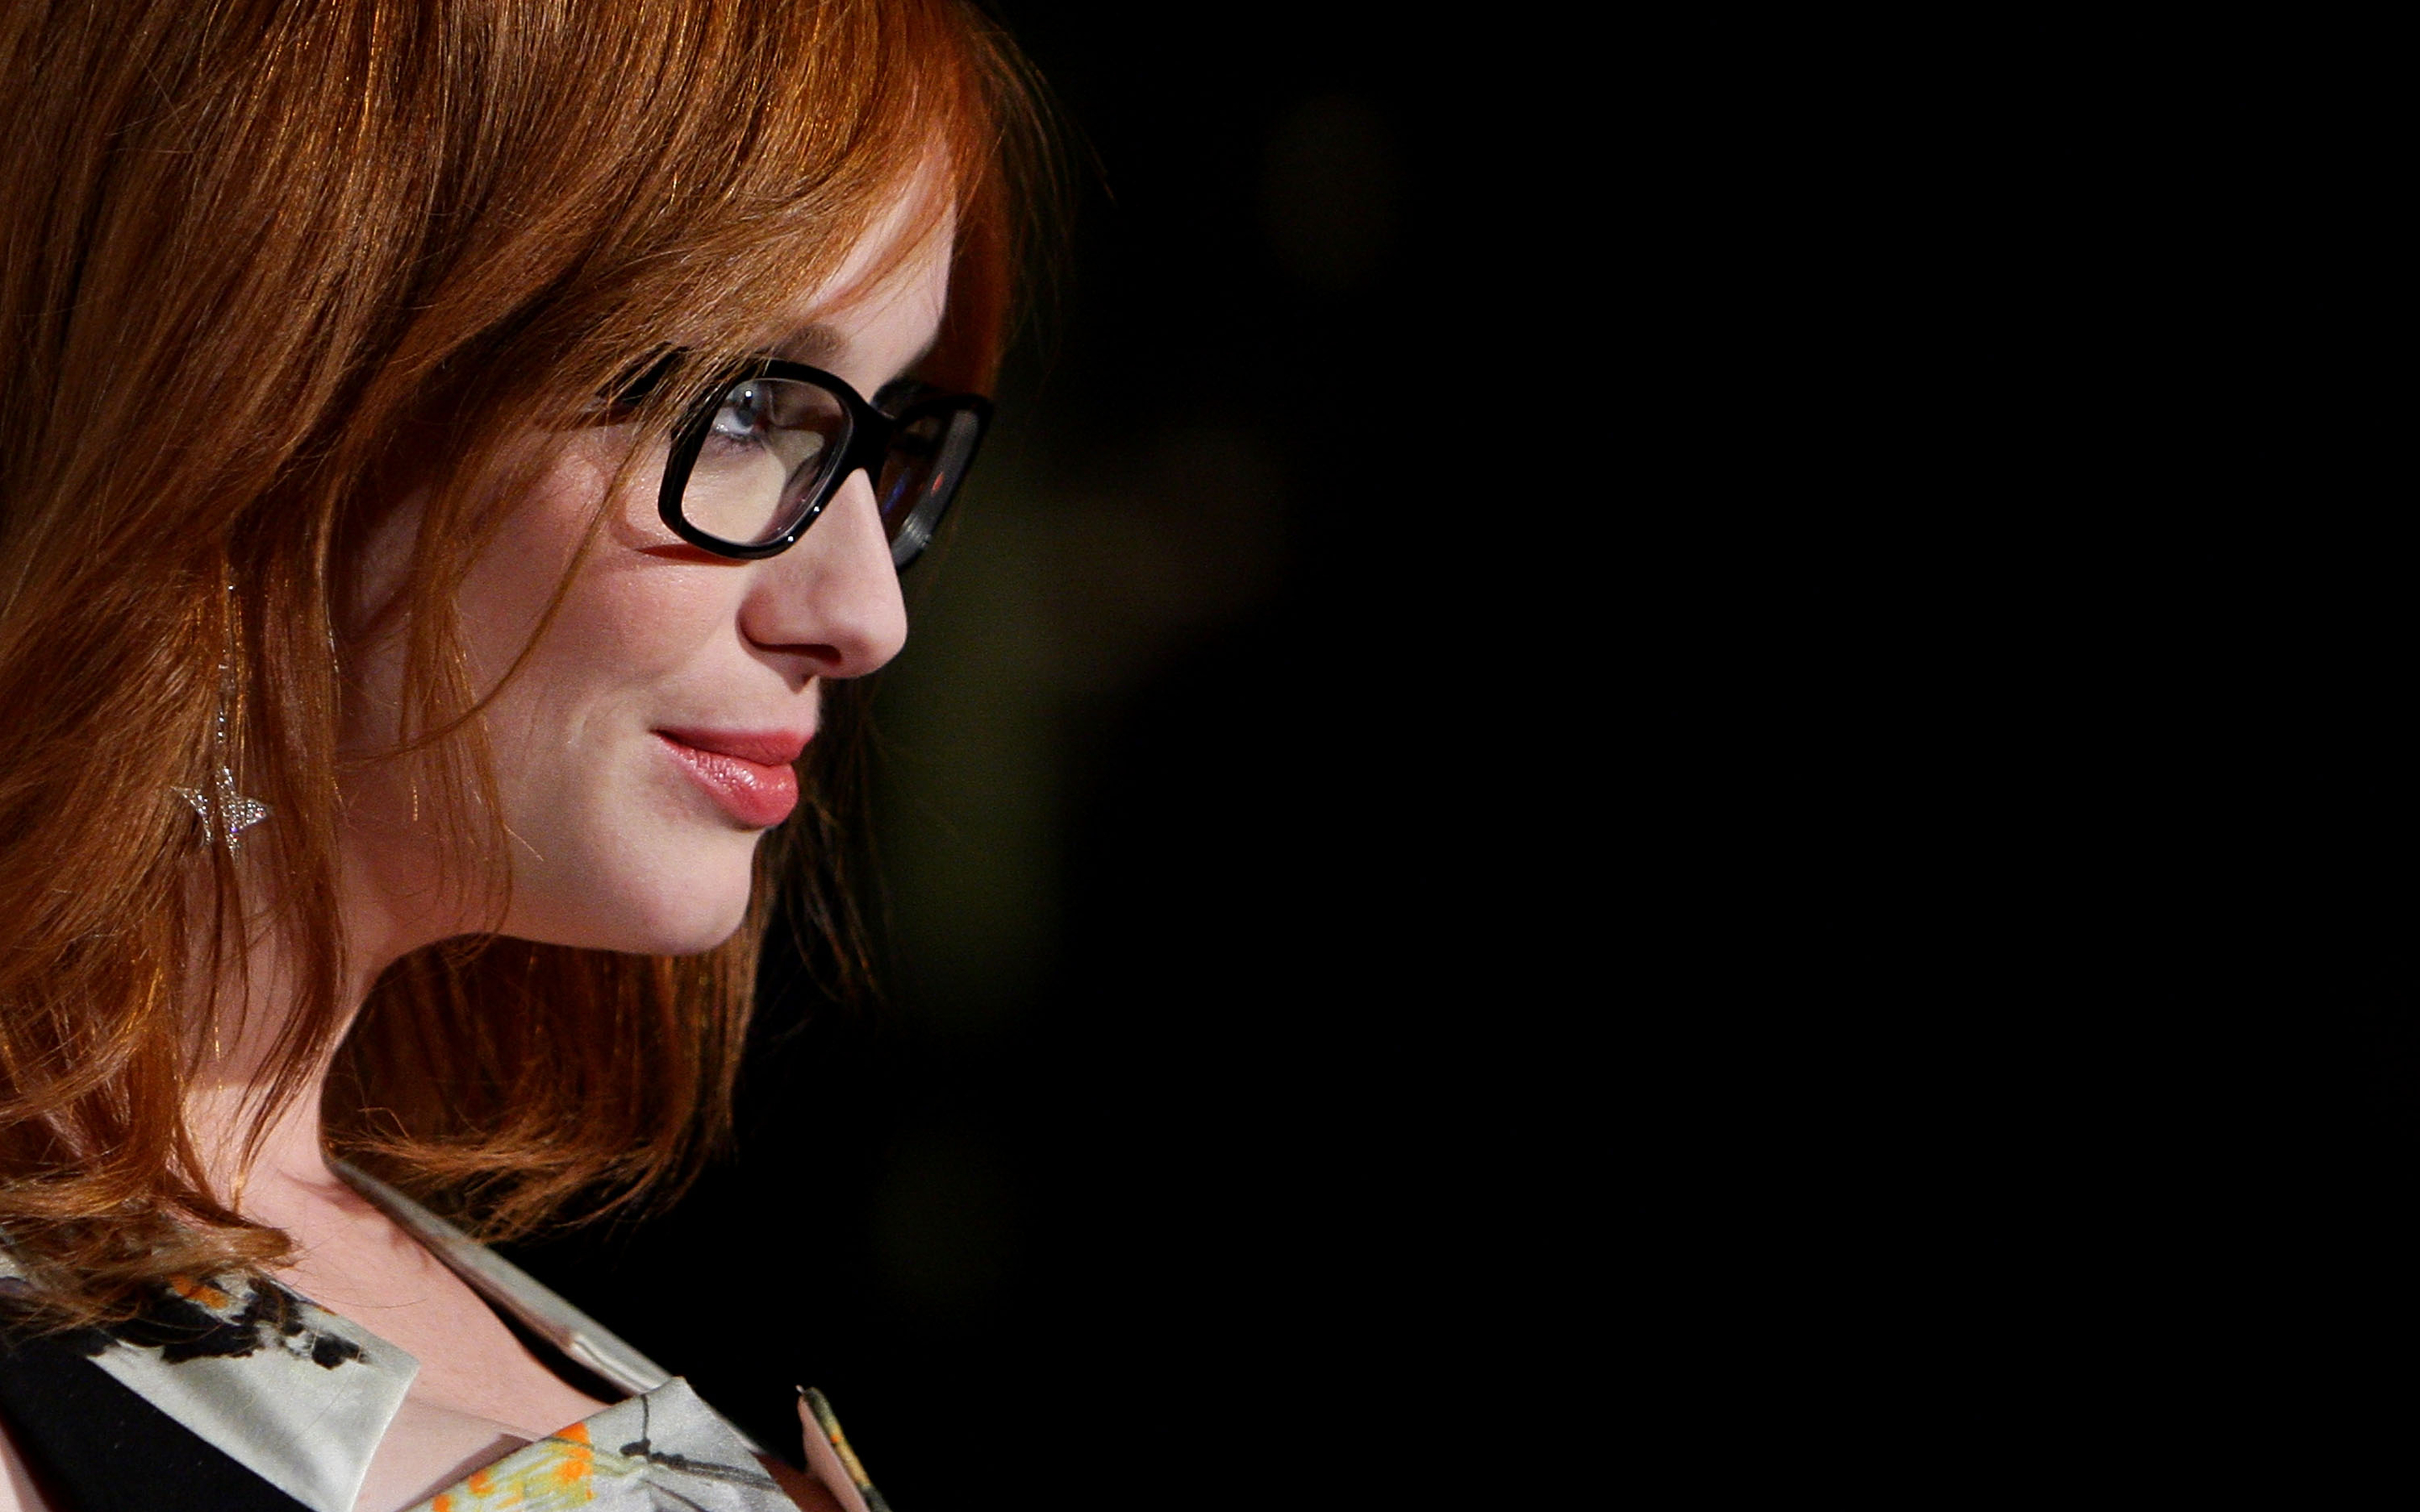 Christina Hendricks Wallpapers Pictures Images 2880x1800